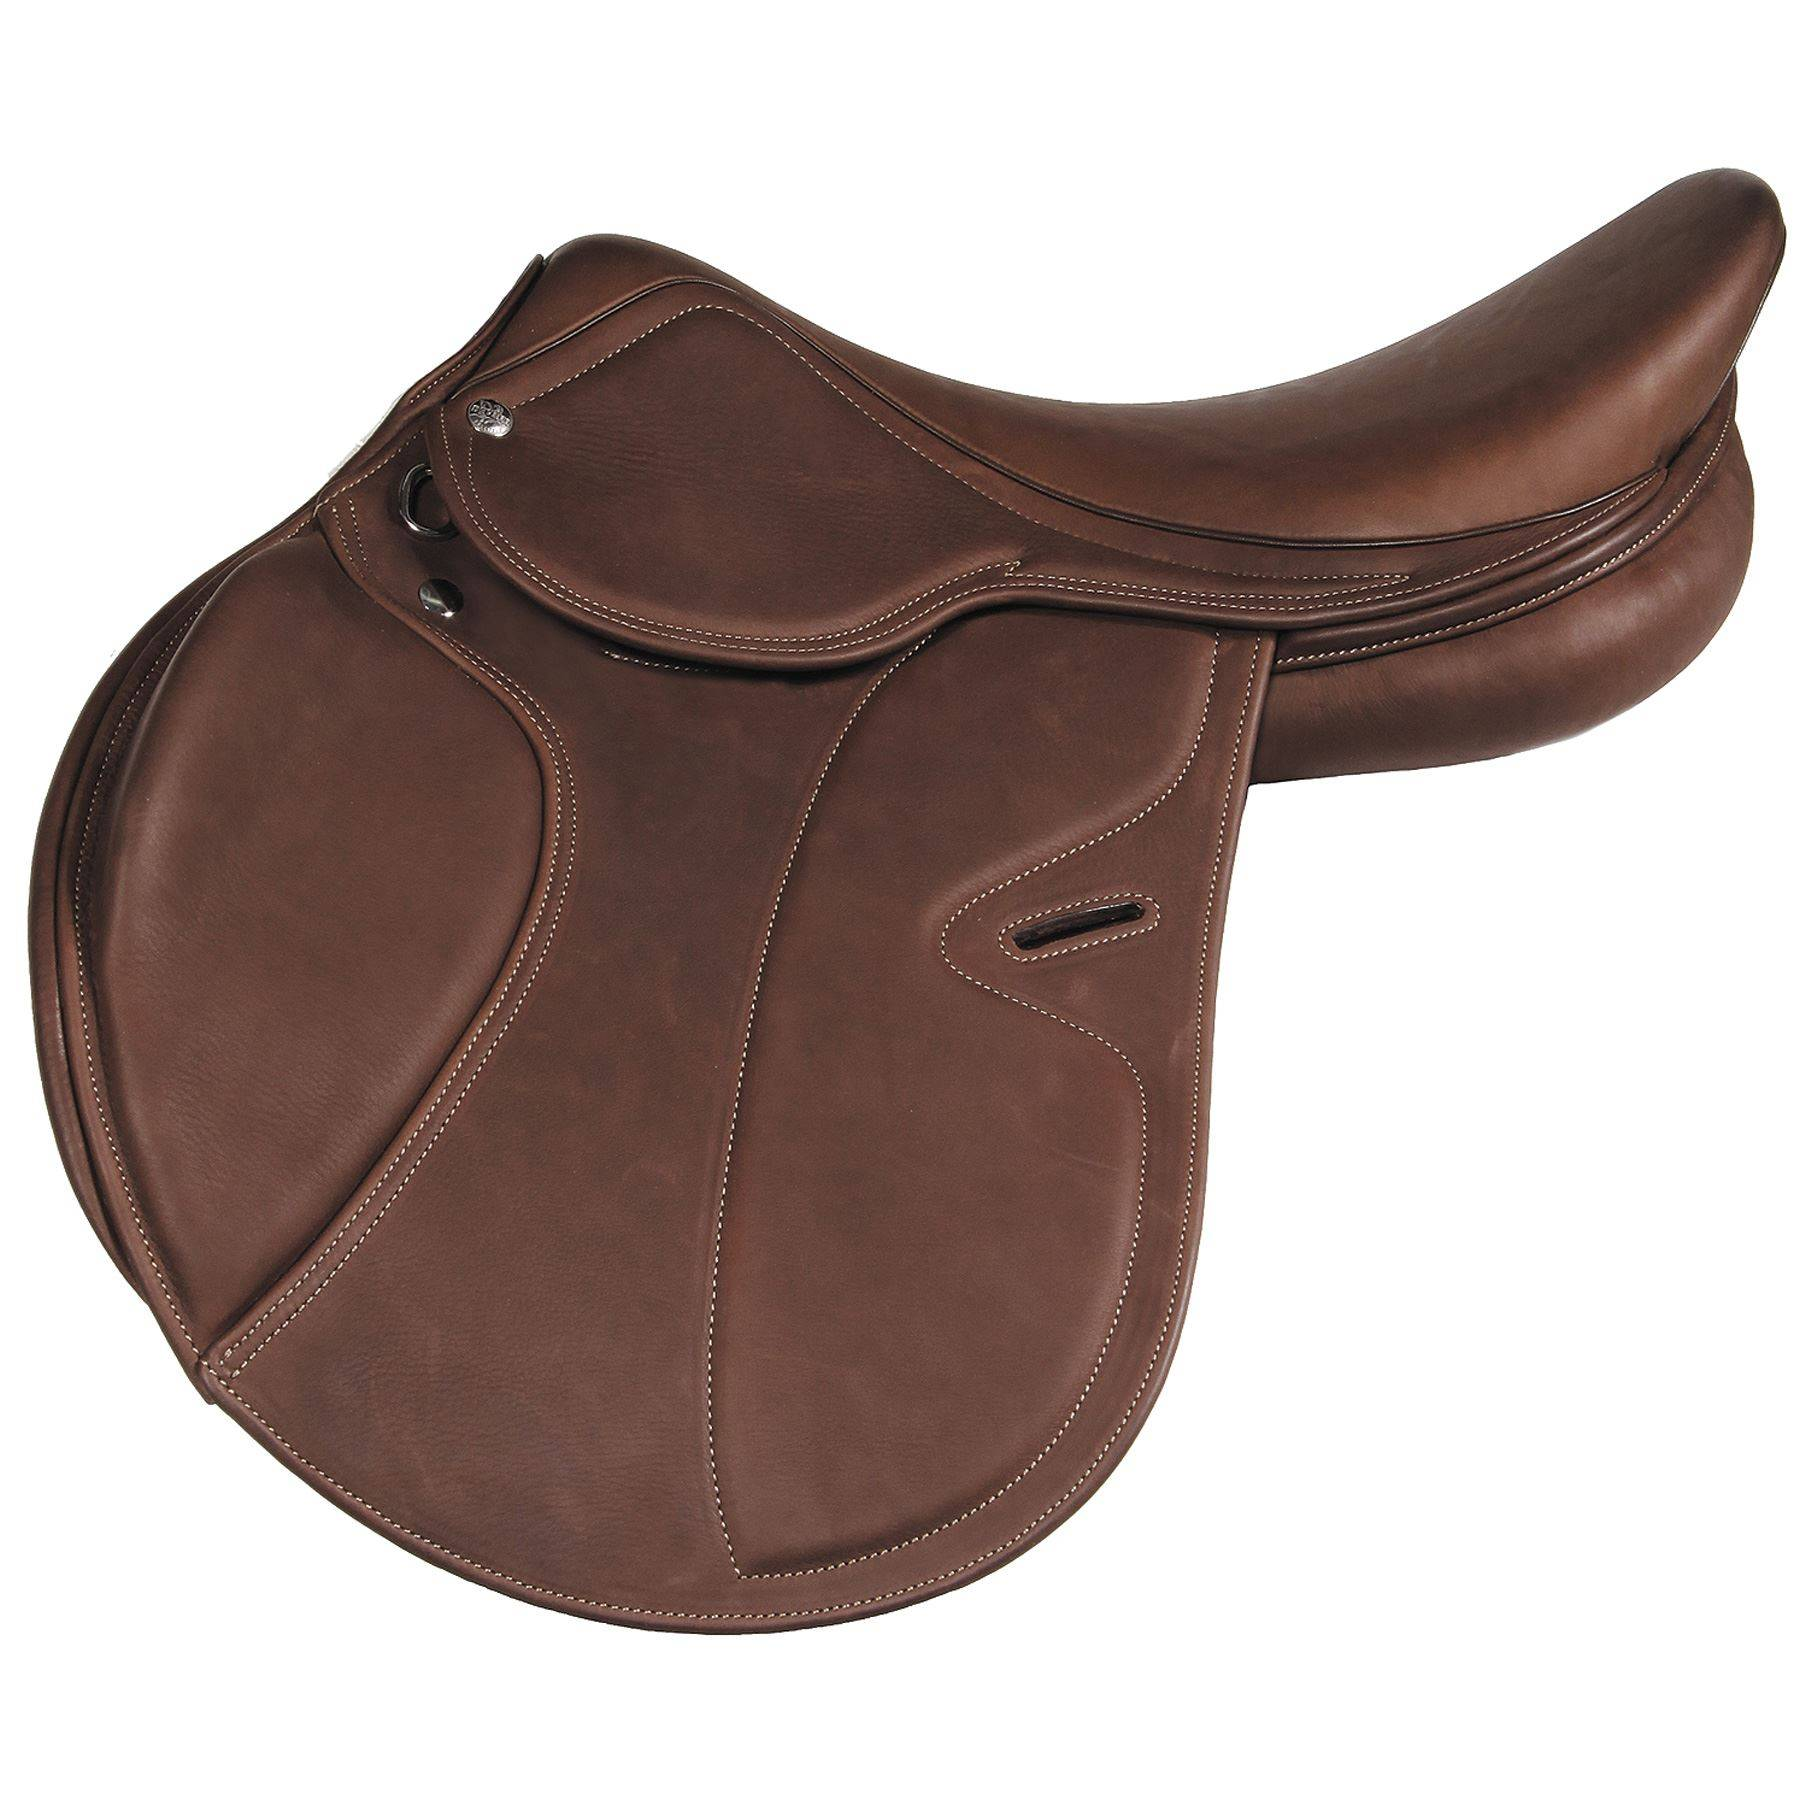 HDR Luxembourg Close Contact Saddle